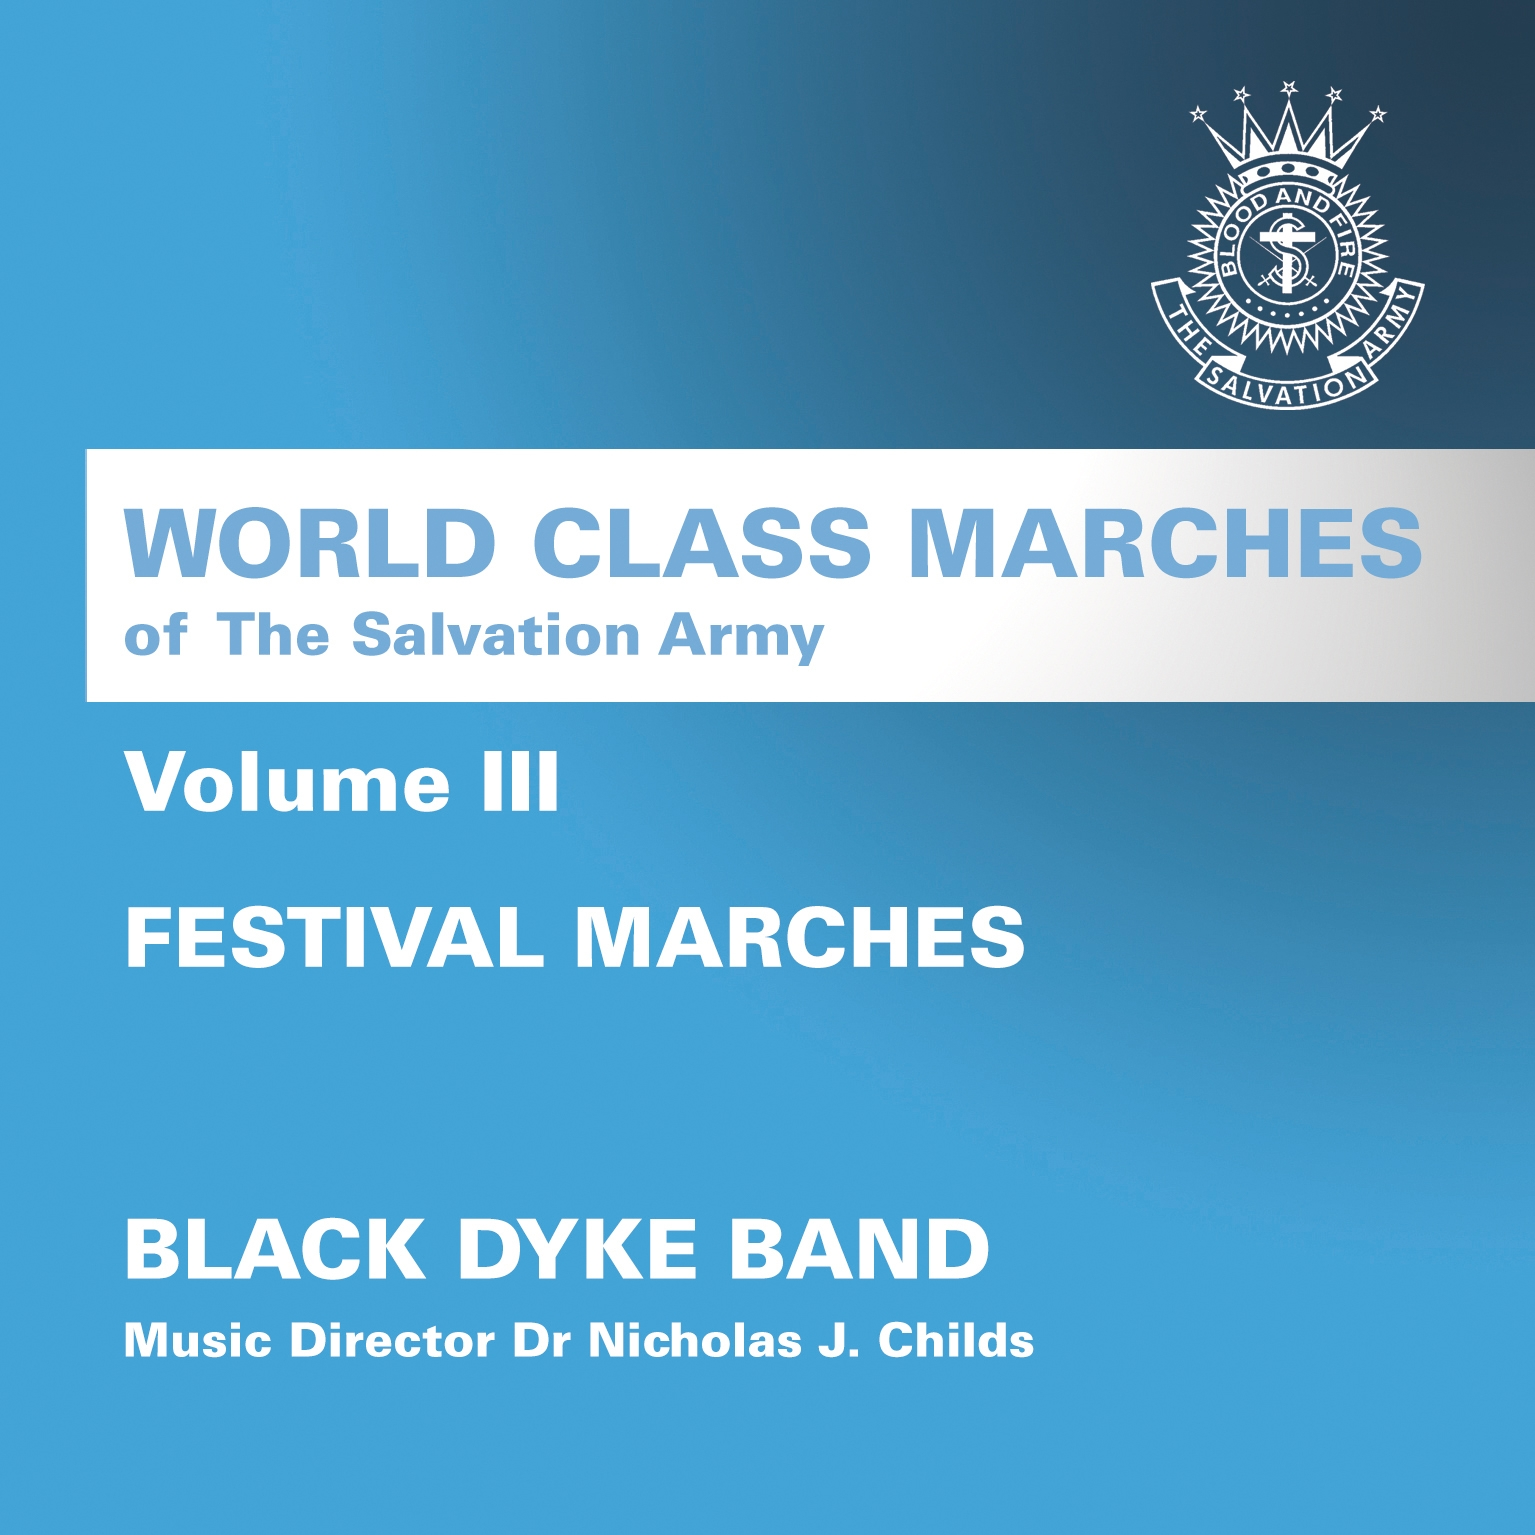 World Class Marches of The Salvation Army Volume III - Festival Marches - Download